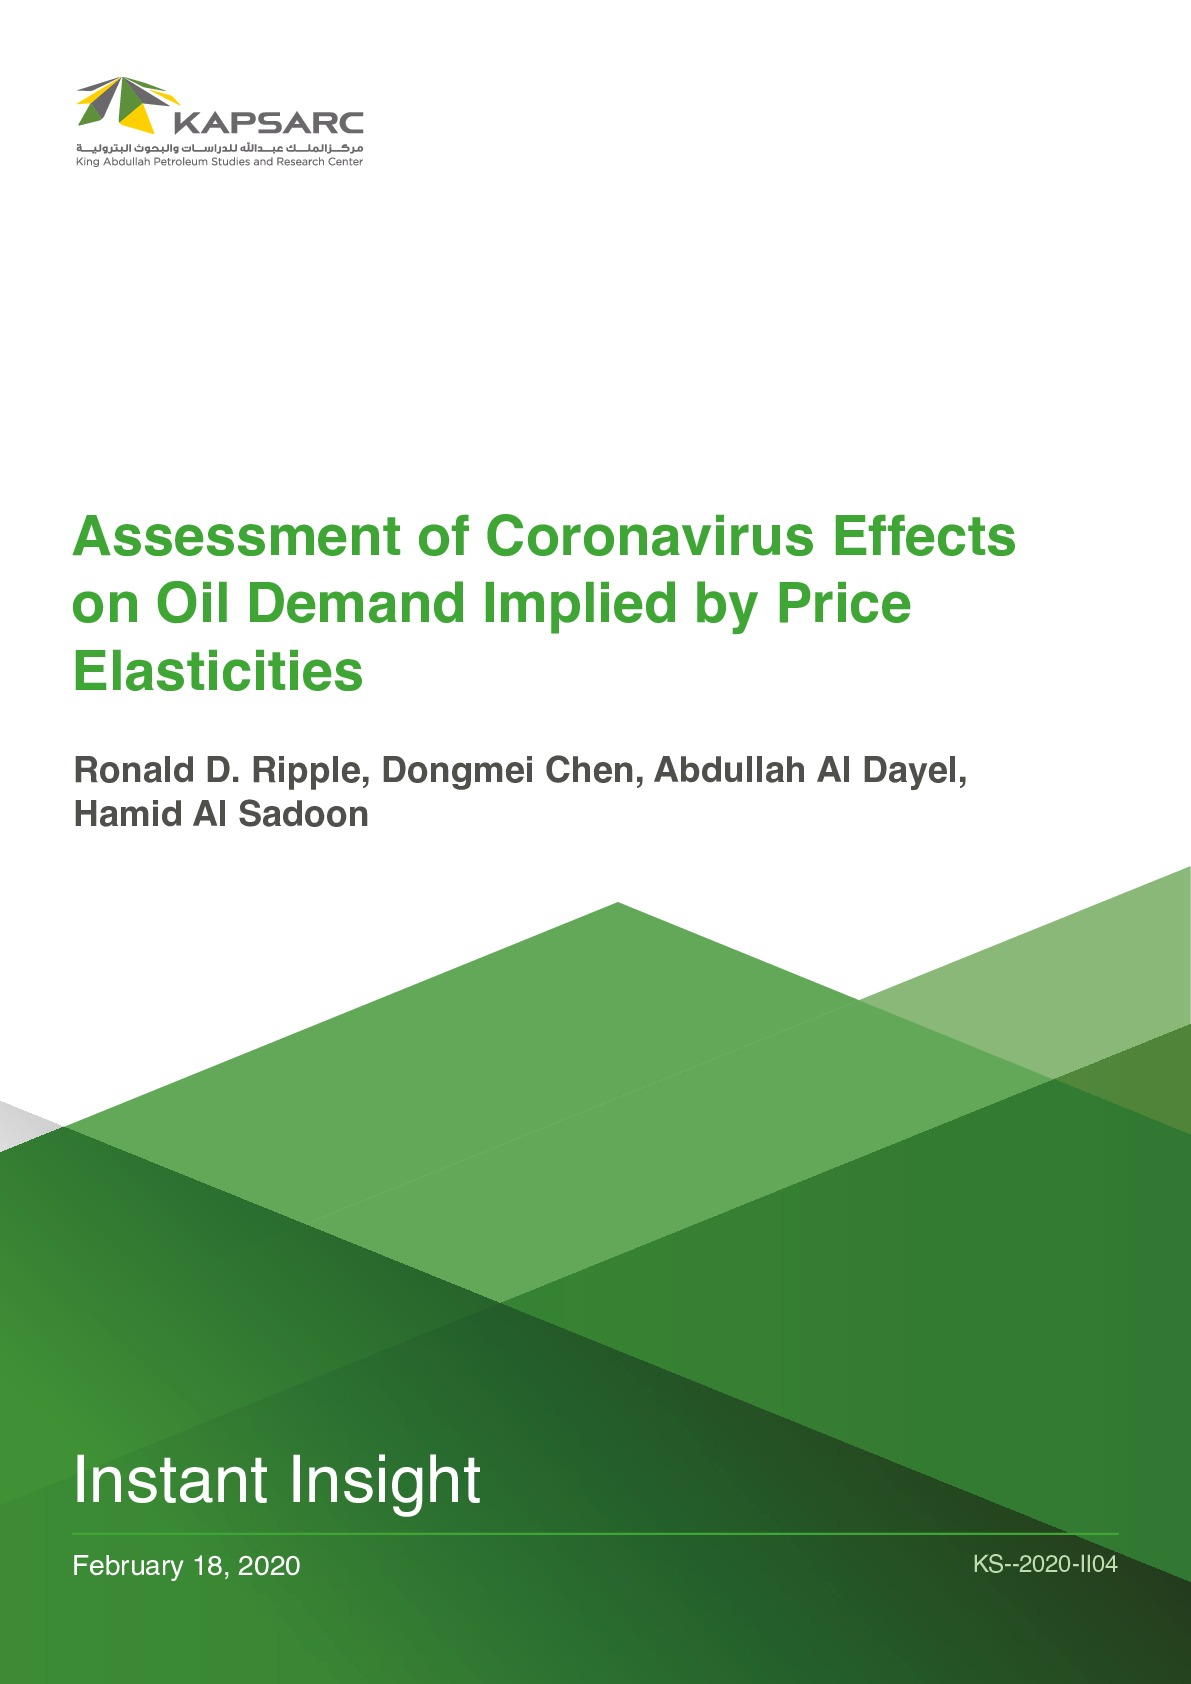 Assessment of Coronavirus Effects on Oil Demand Implied by Price Elasticities